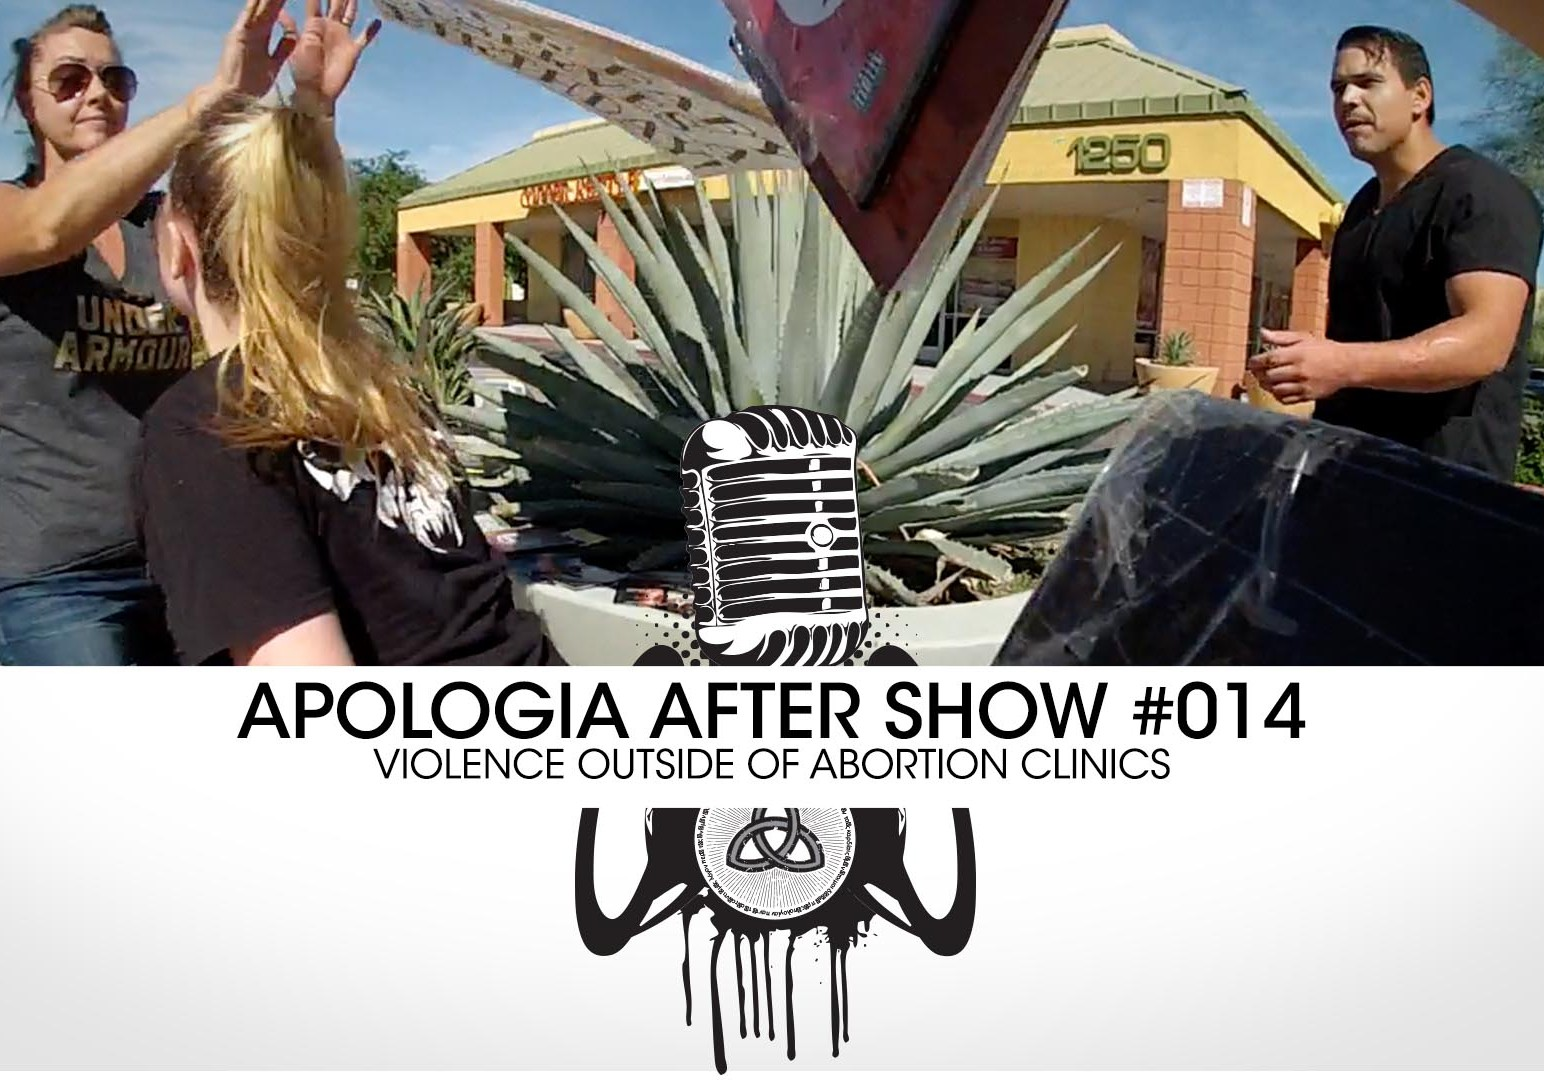 Abortion_Violence_ApologiaAfterShow